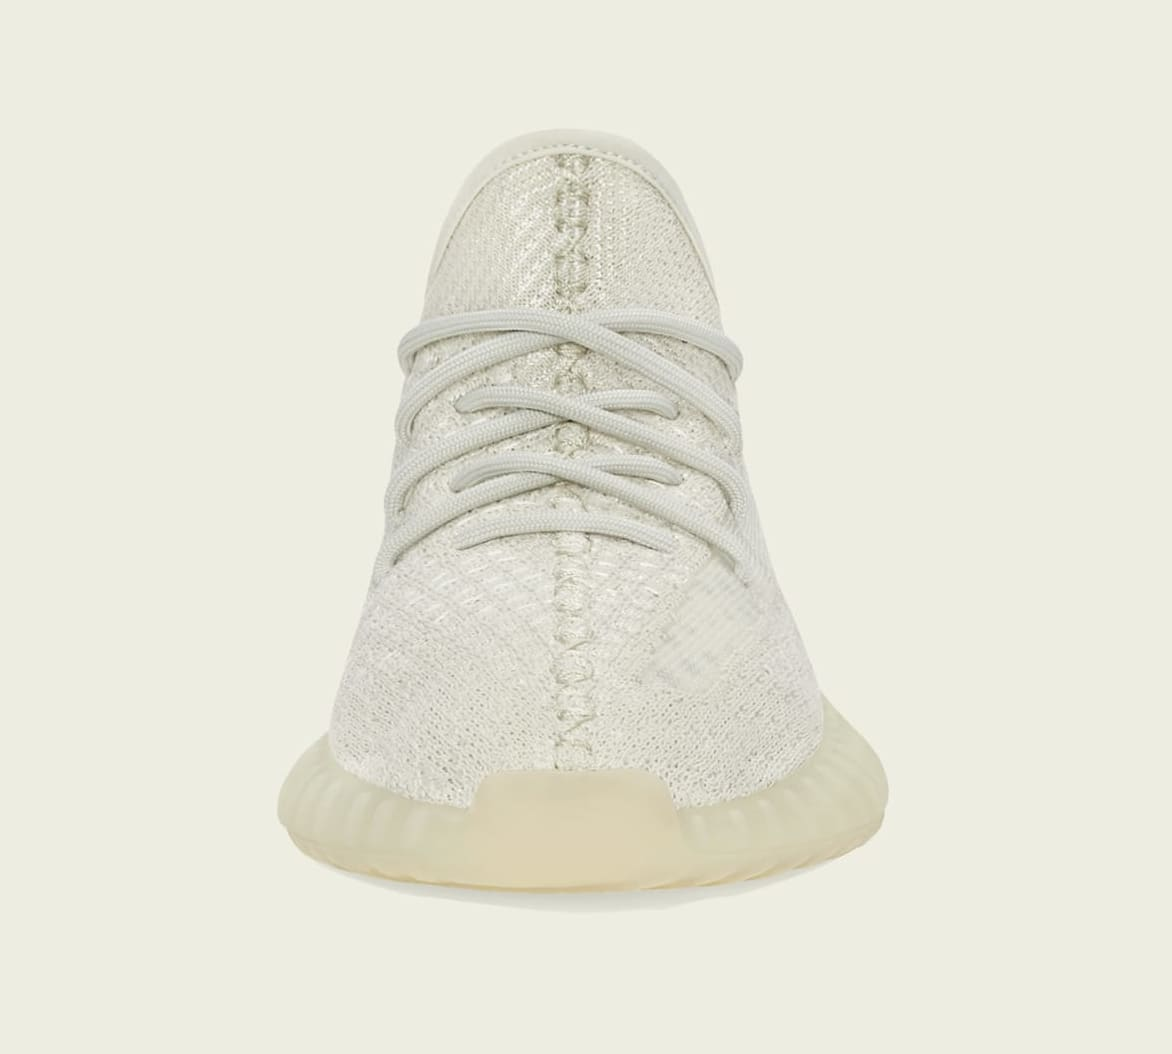 Adidas Yeezy Boost 350 V2 'Light' GY3438 Front